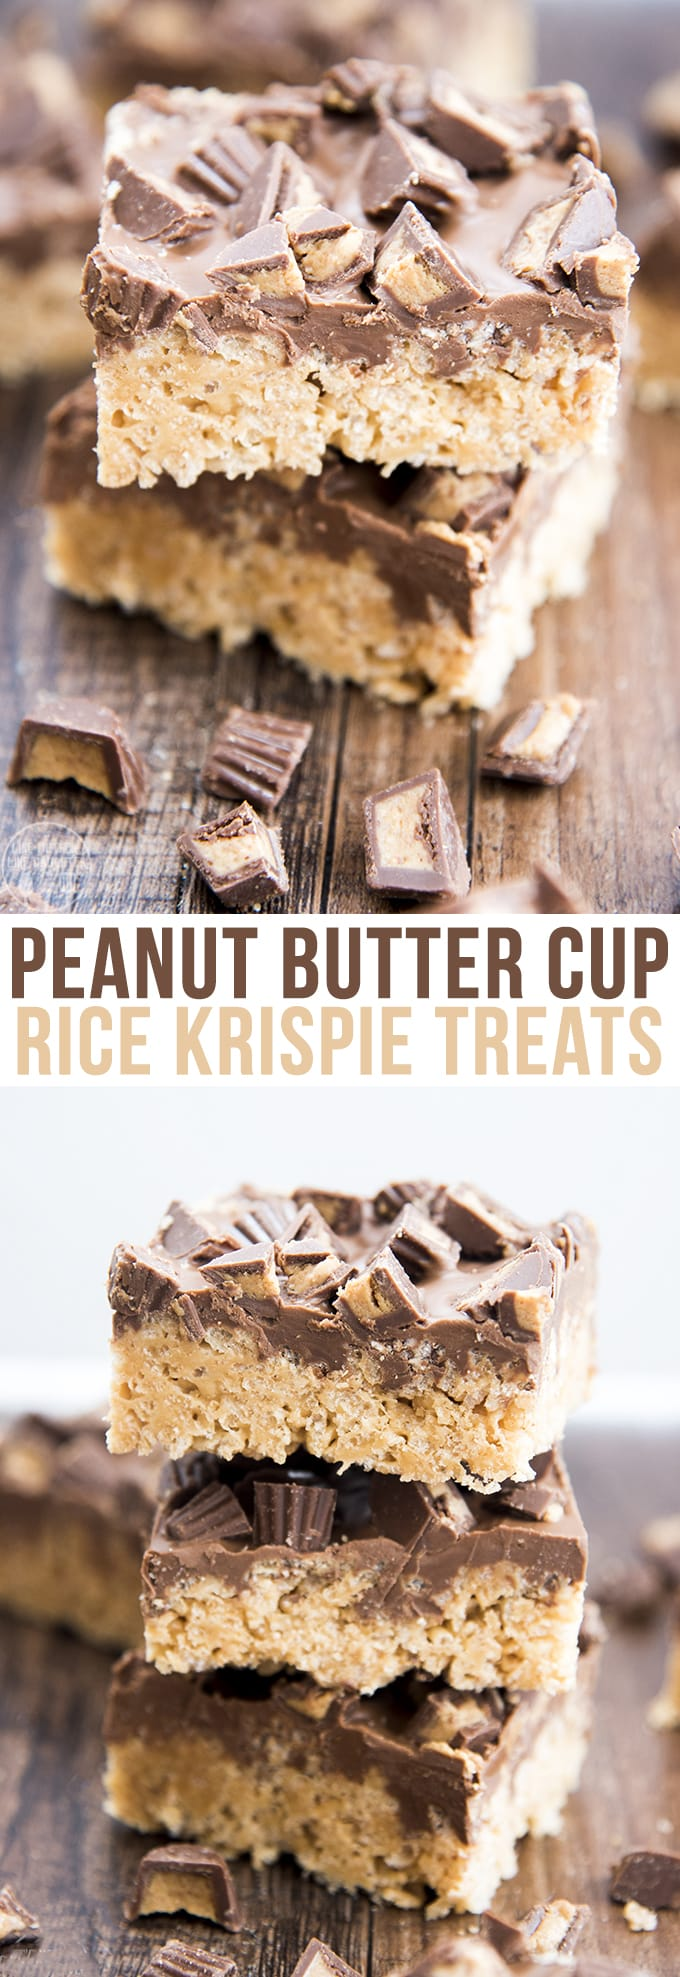 Peanut butter cup rice krispie treats are a perfect easy and delicious treat. With a peanut butter marshmallow krispie treat base, topped with a chocolate peanut butter ganache and chopped peanut butter cups!